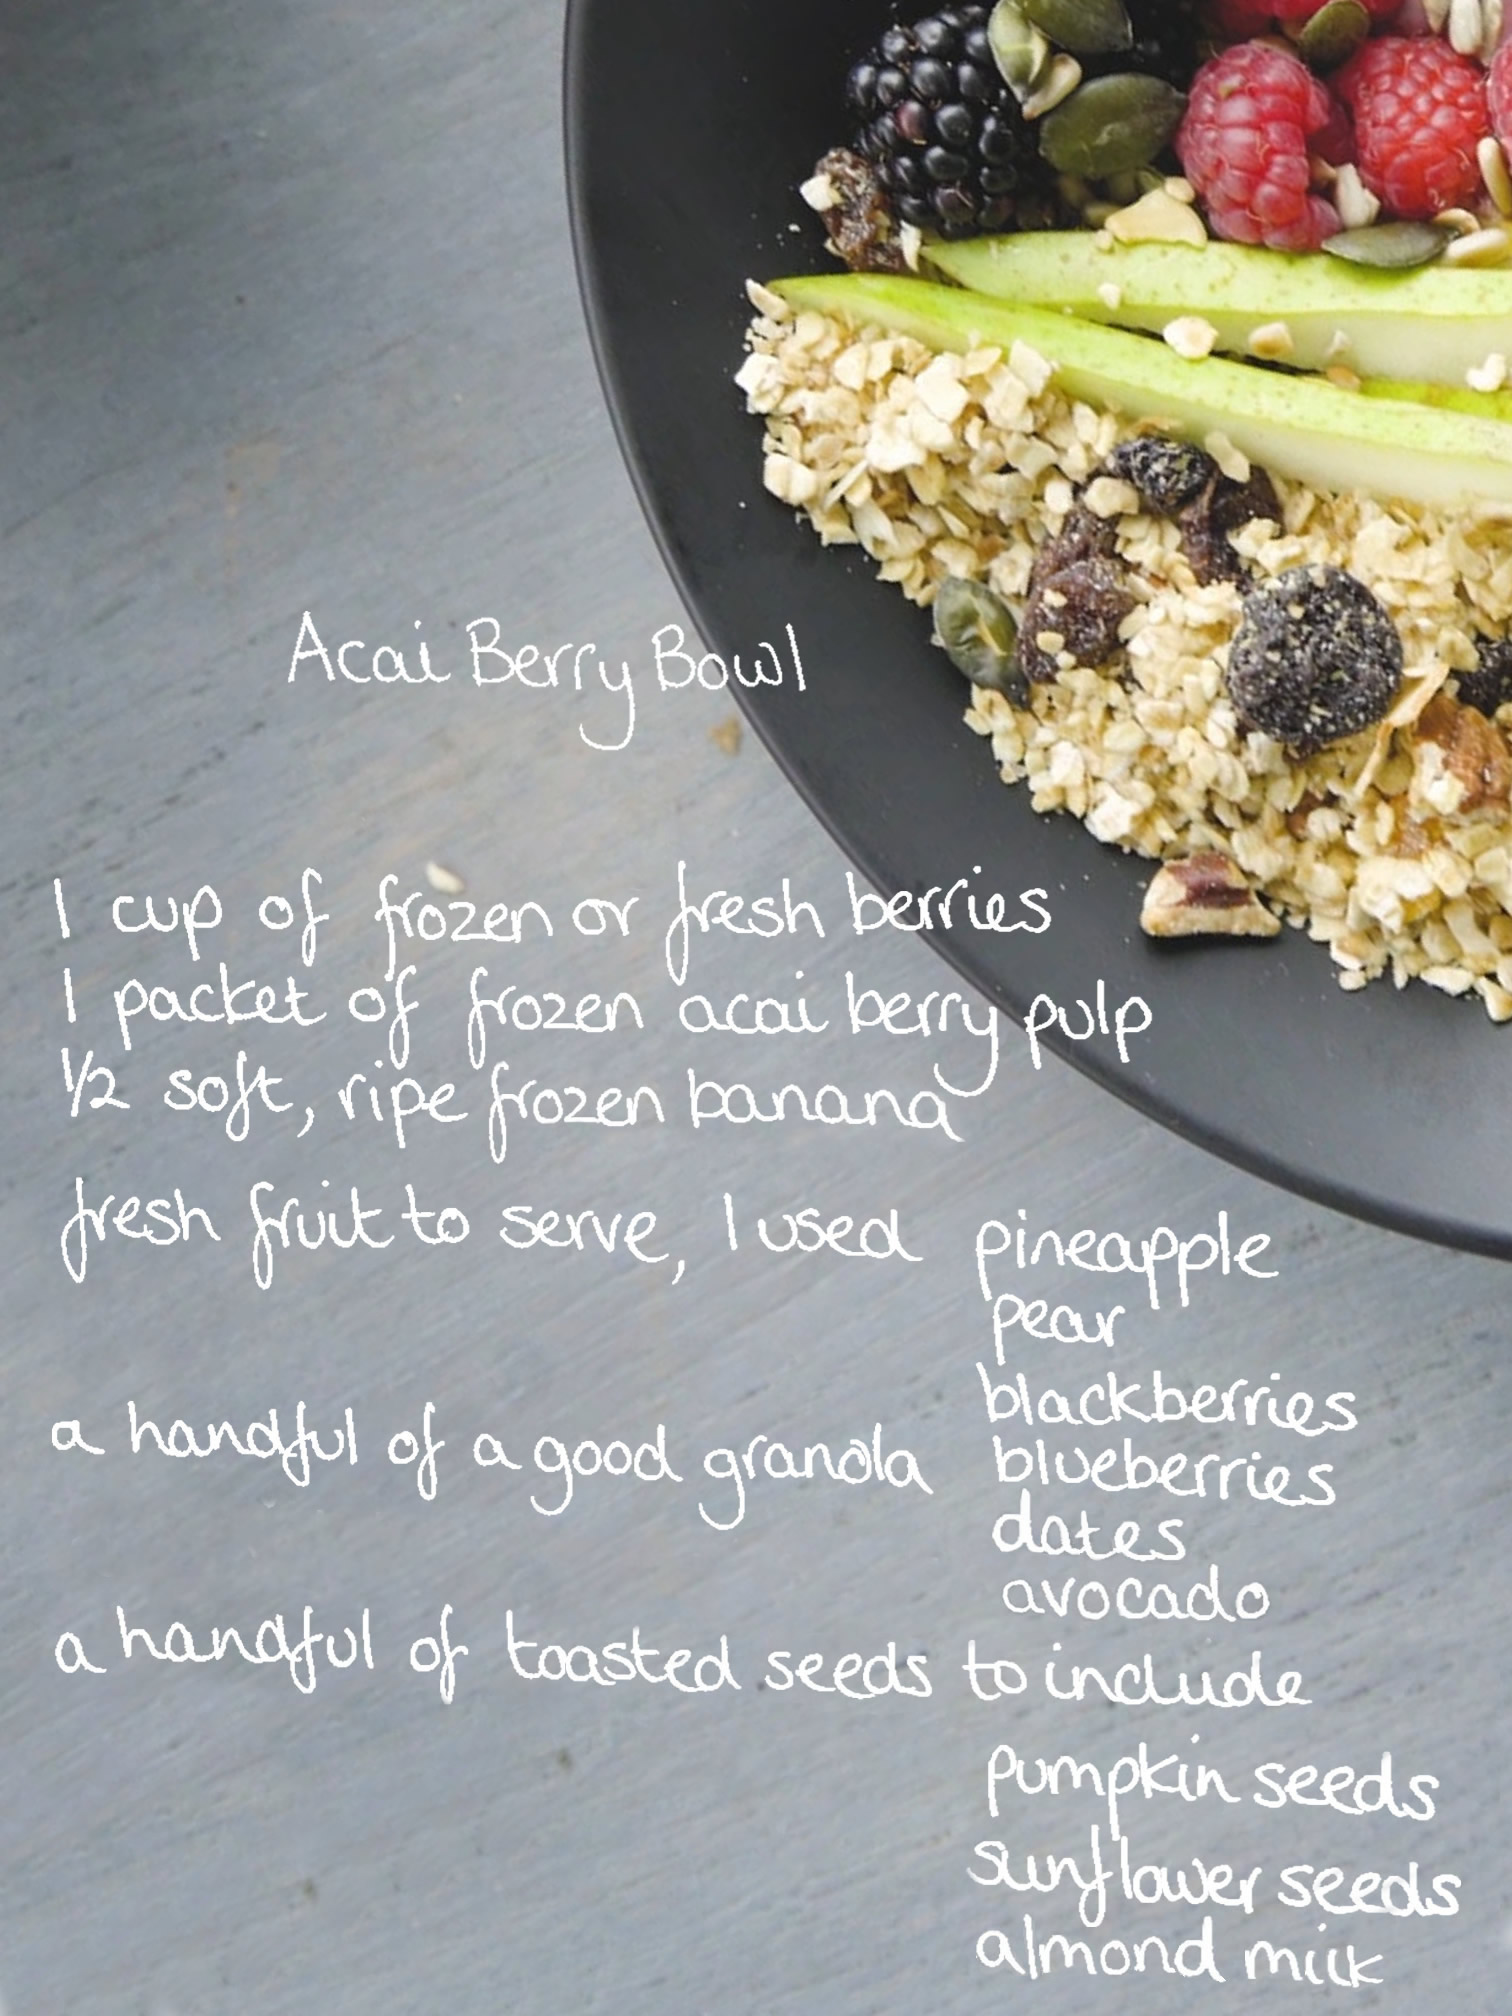 Acai Berry Bowl Ingredients List